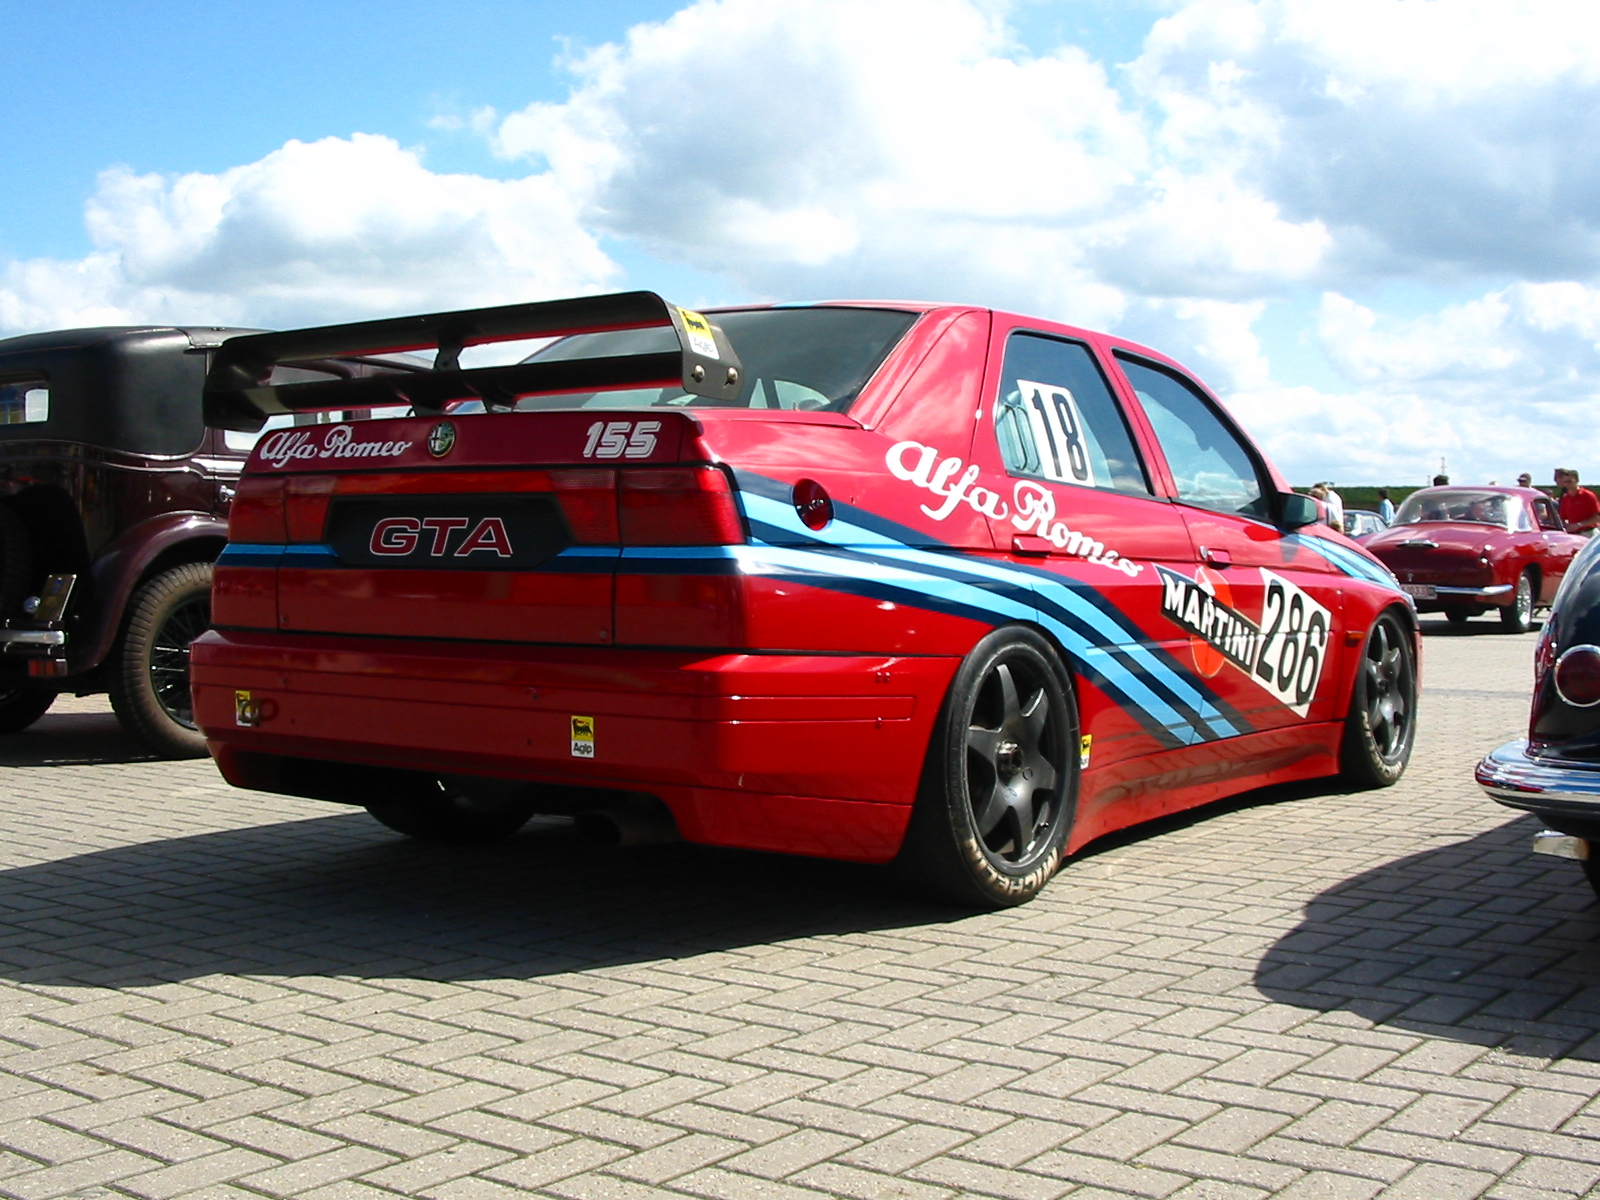 Alfa-Romeo 155 photo 04